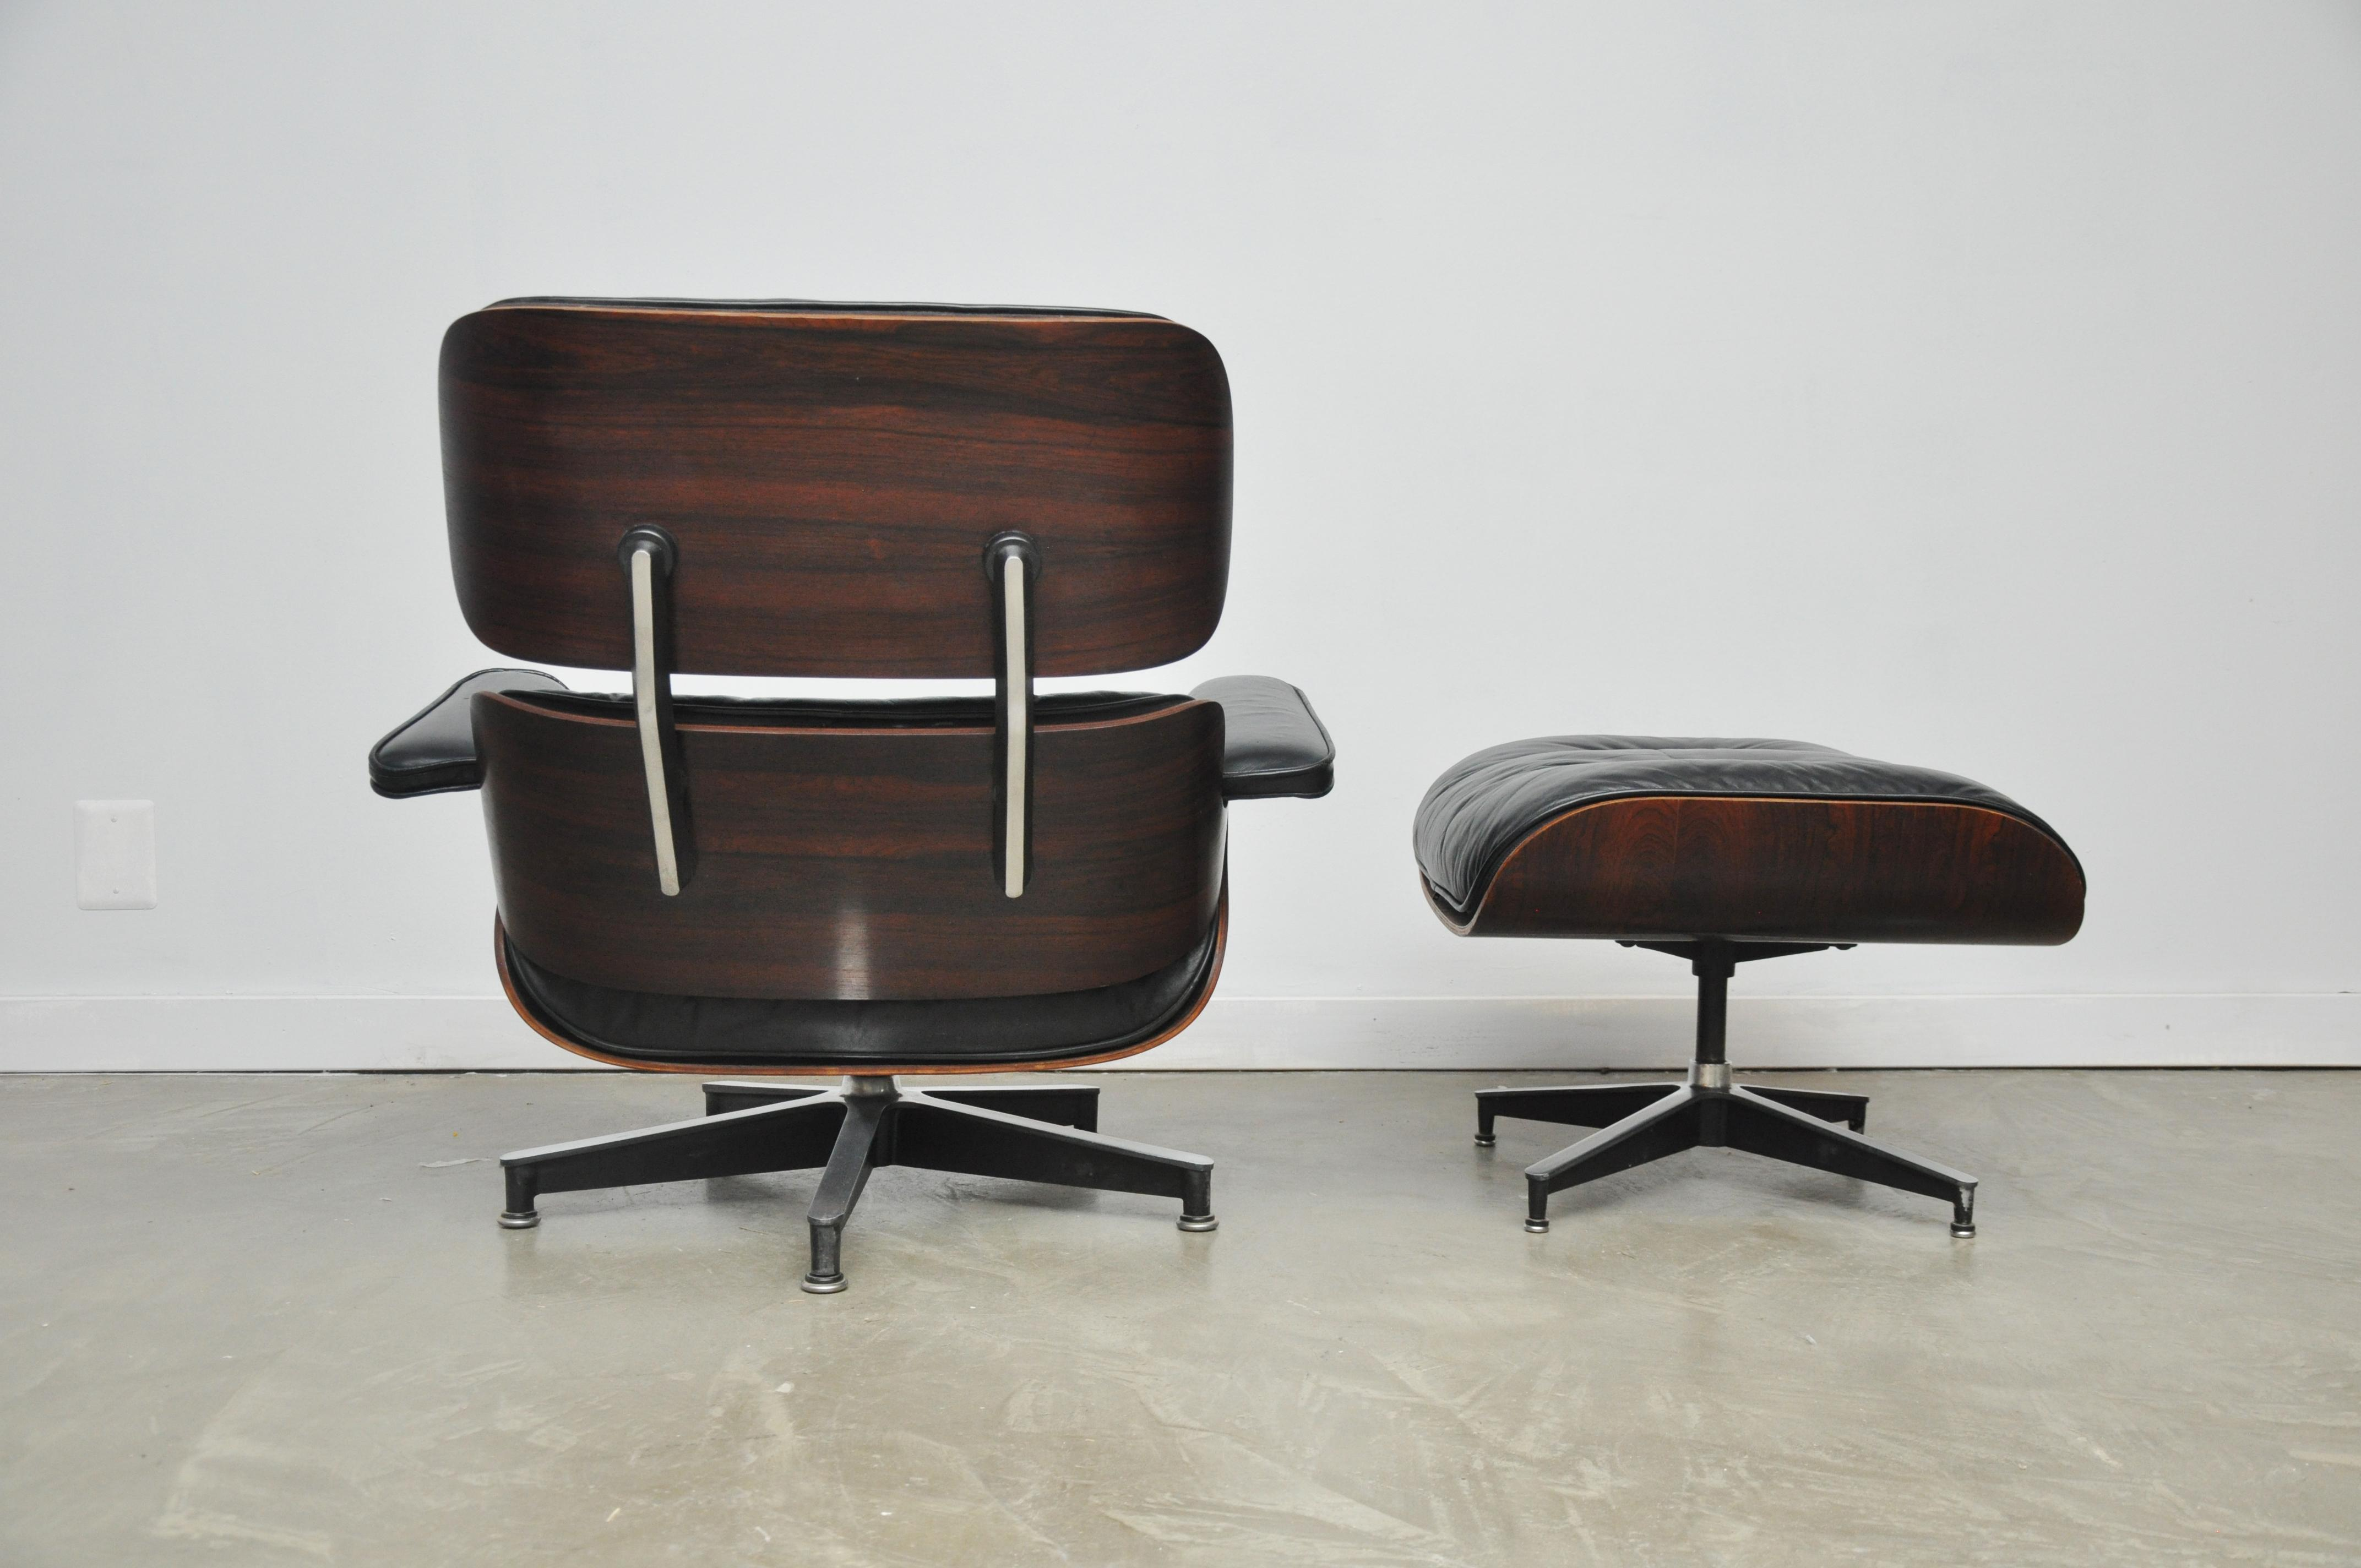 Charles Eames Lounge exquisite rosewood charles eames lounge chair for herman miller decaso